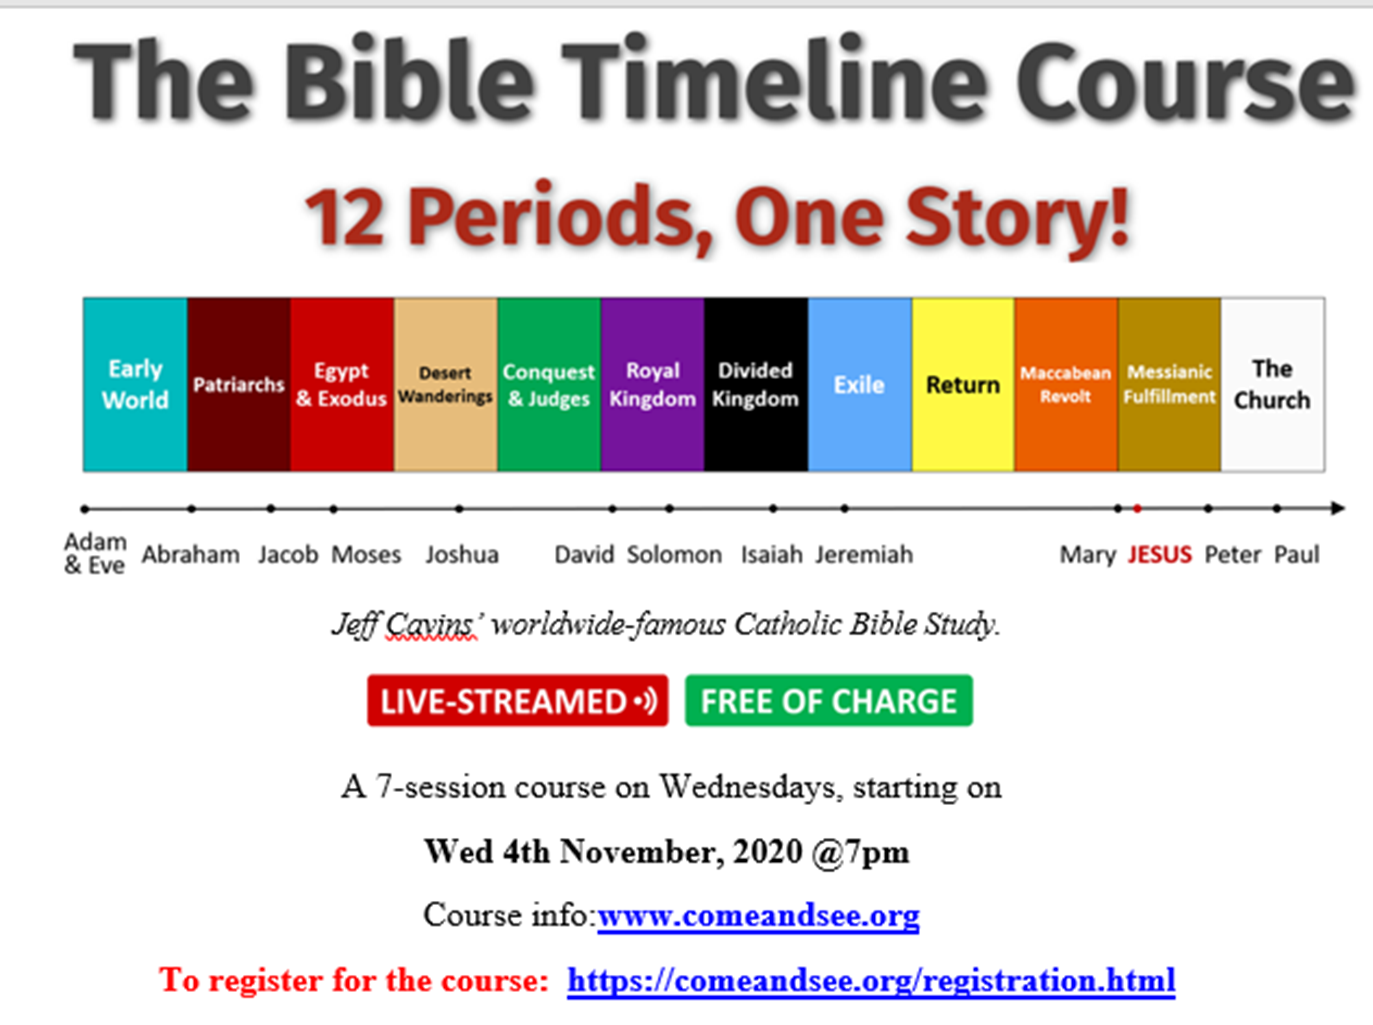 The Bible Timeline Course - Diocese of Westminster